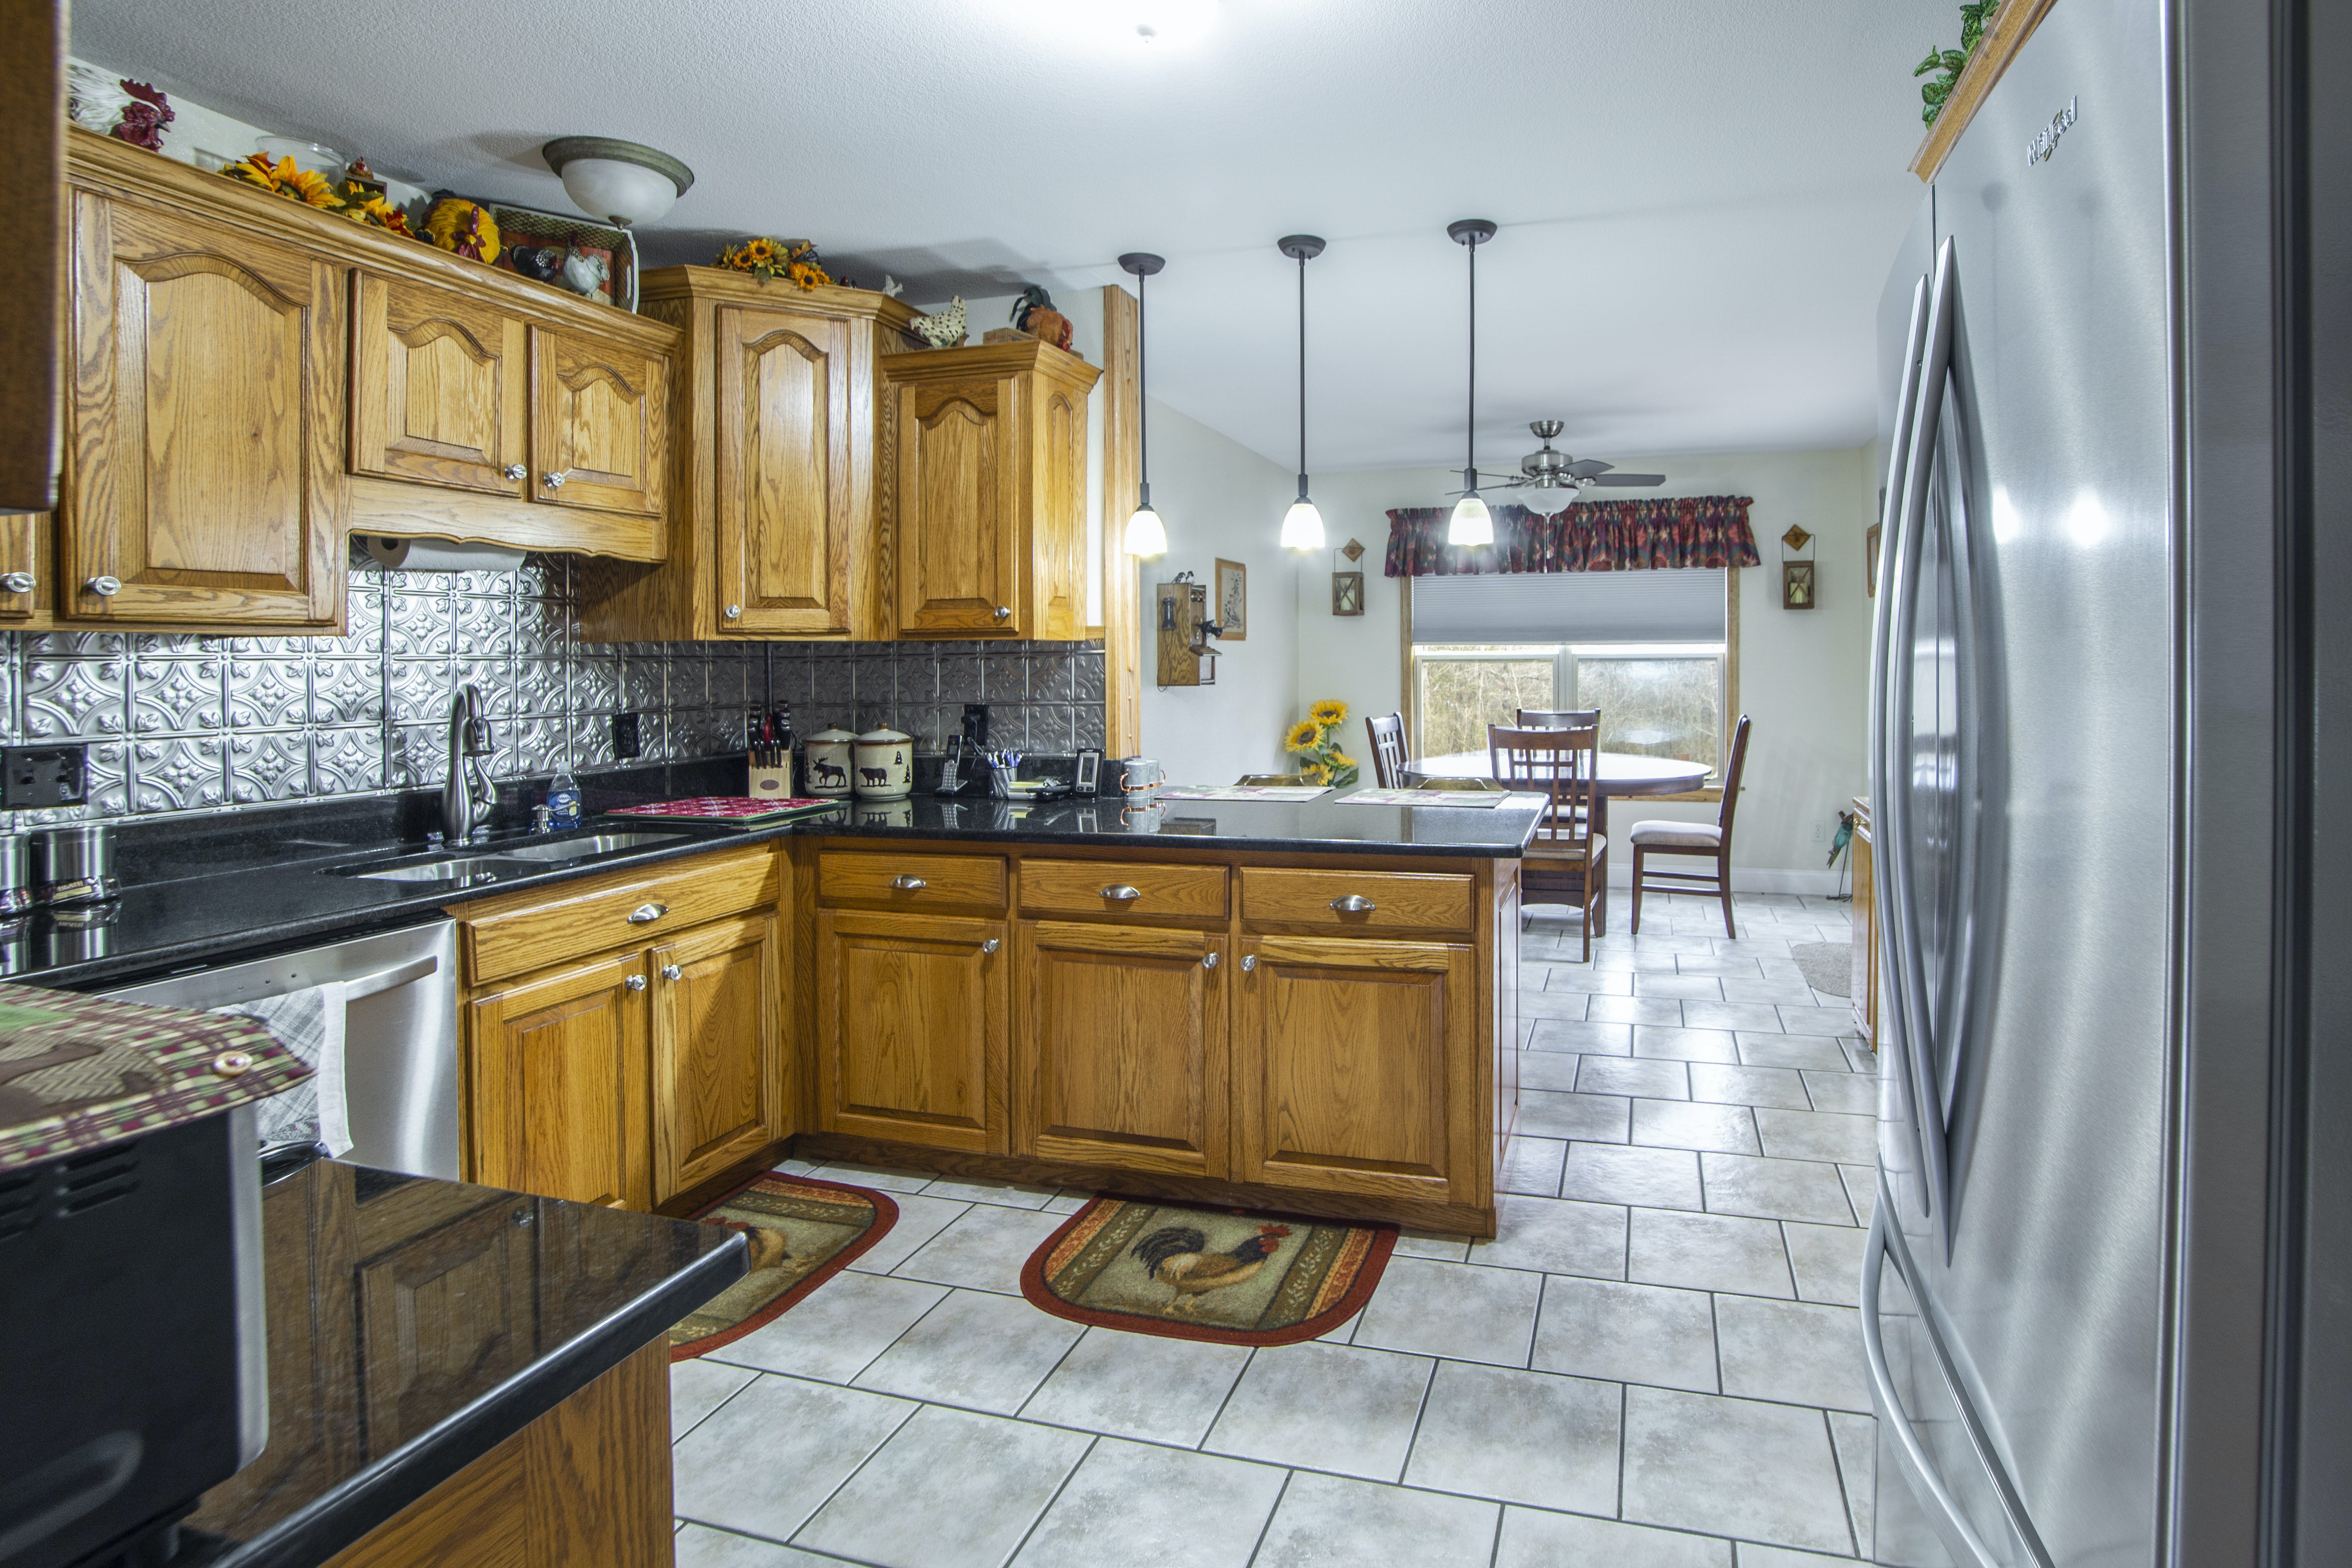 Photo of Wooden Cabinets and Refrigerator